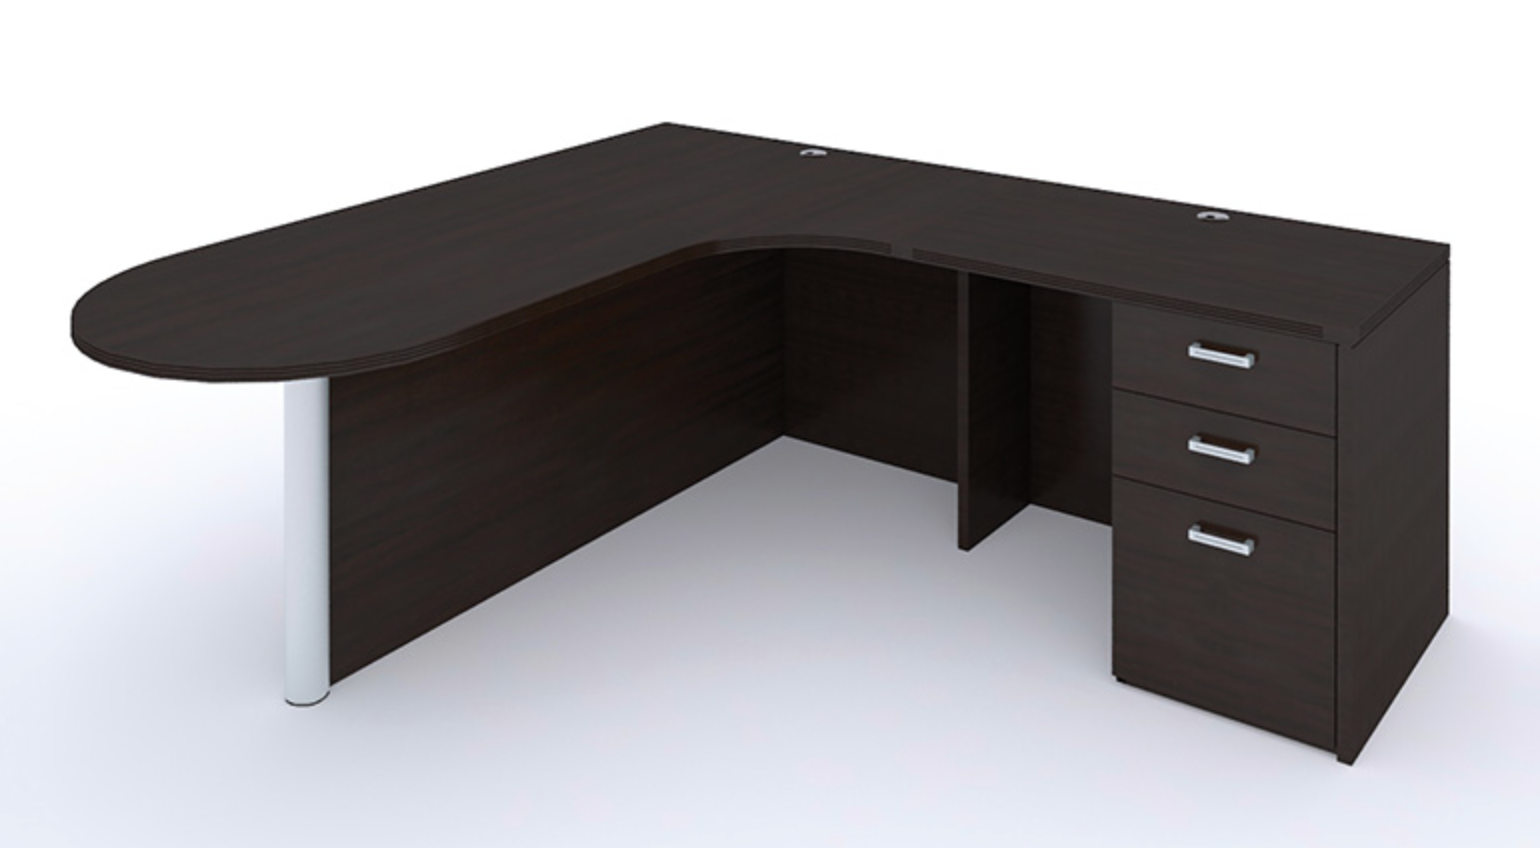 905-MEC Eastwinds Small Home Computer Desk - $326.99 + Free Shipping